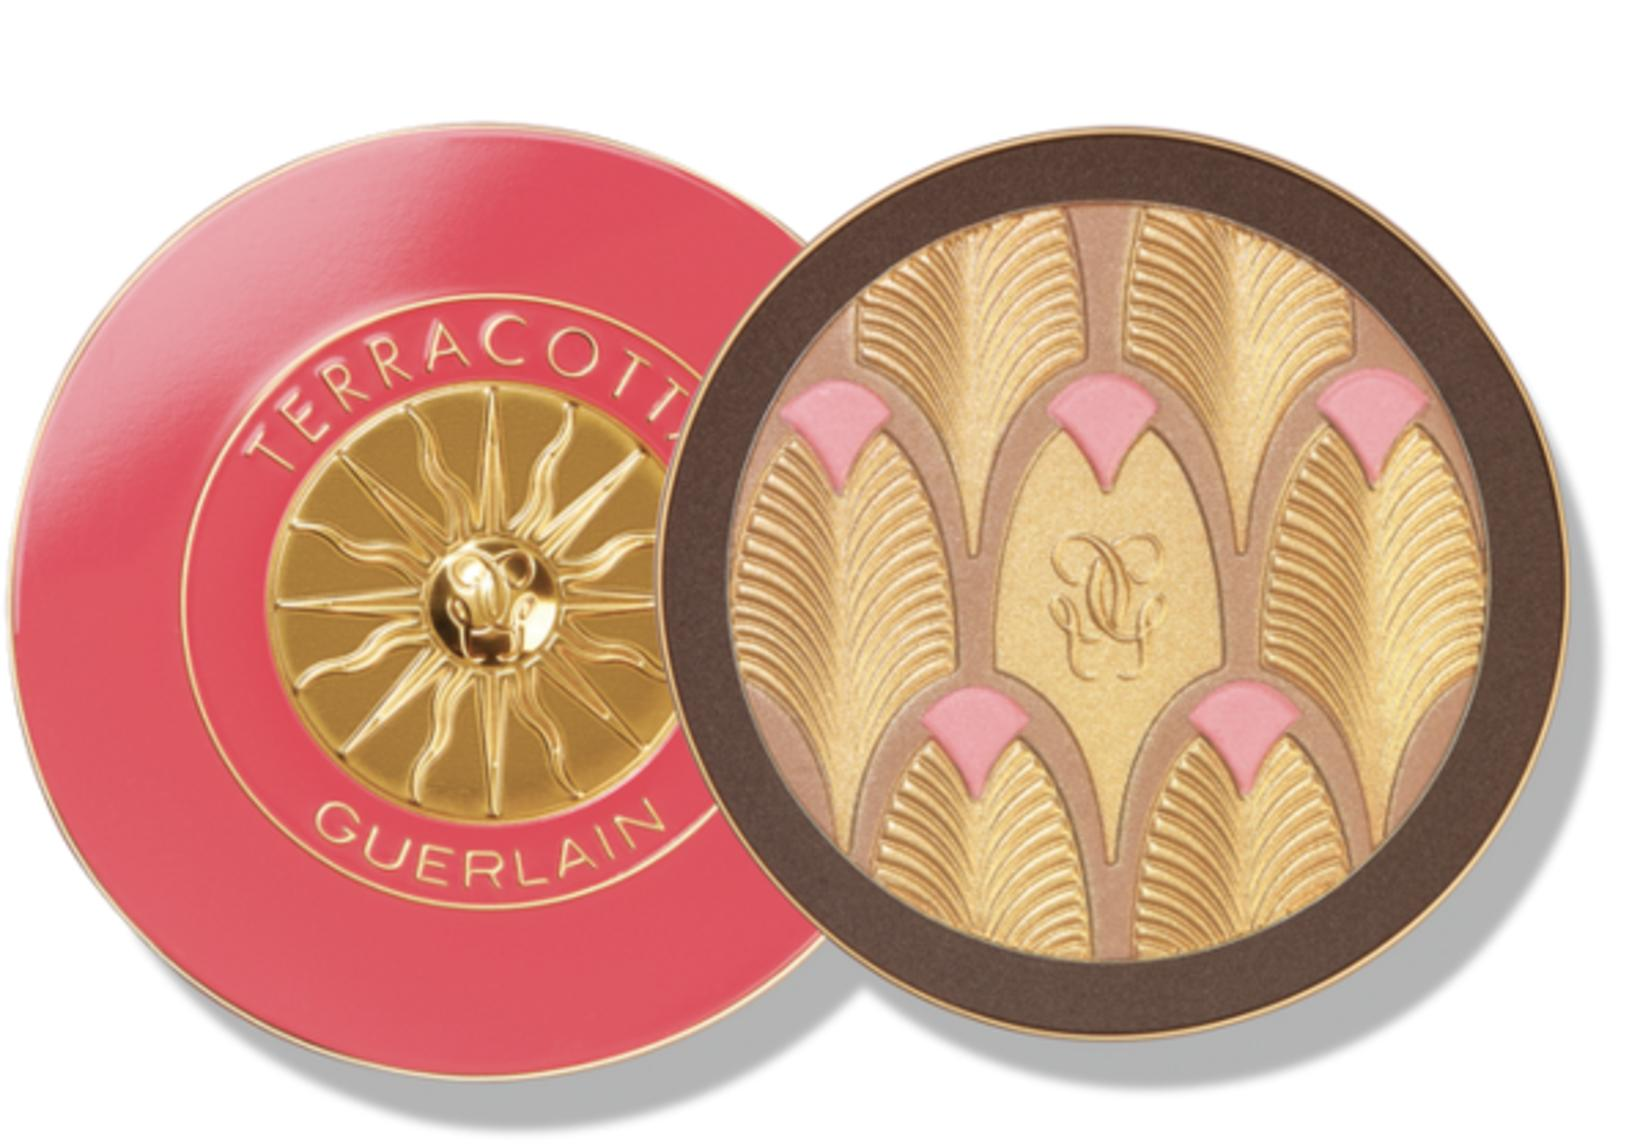 Guerlain Terracotta Pacific Avenue Bronzing & Blush Powder, 7.199 kr.